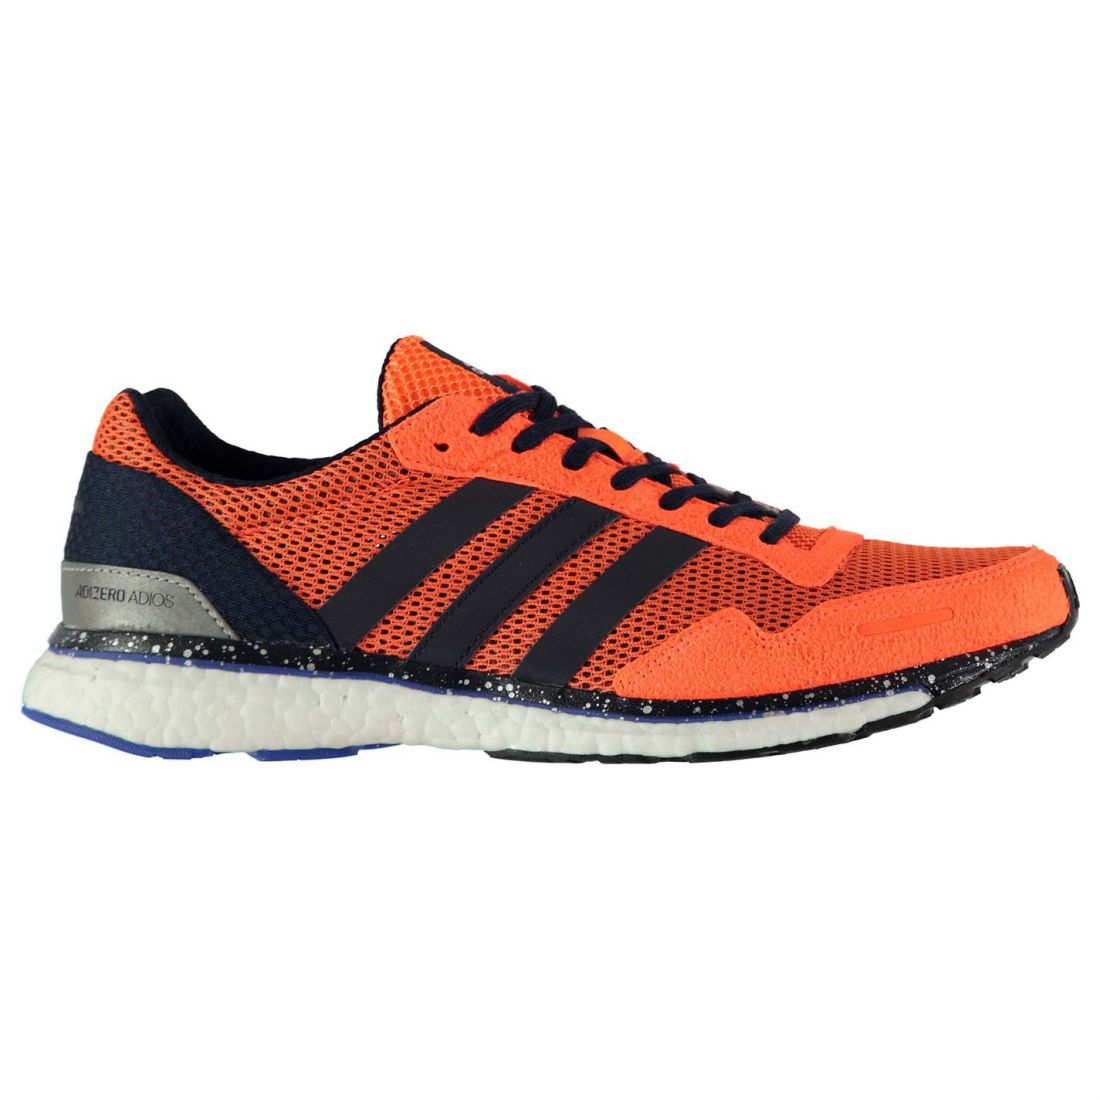 reputable site 699e0 f1d48 Image is loading adidas-Adizero-Adios-3-Running-Shoes-Road-Mens